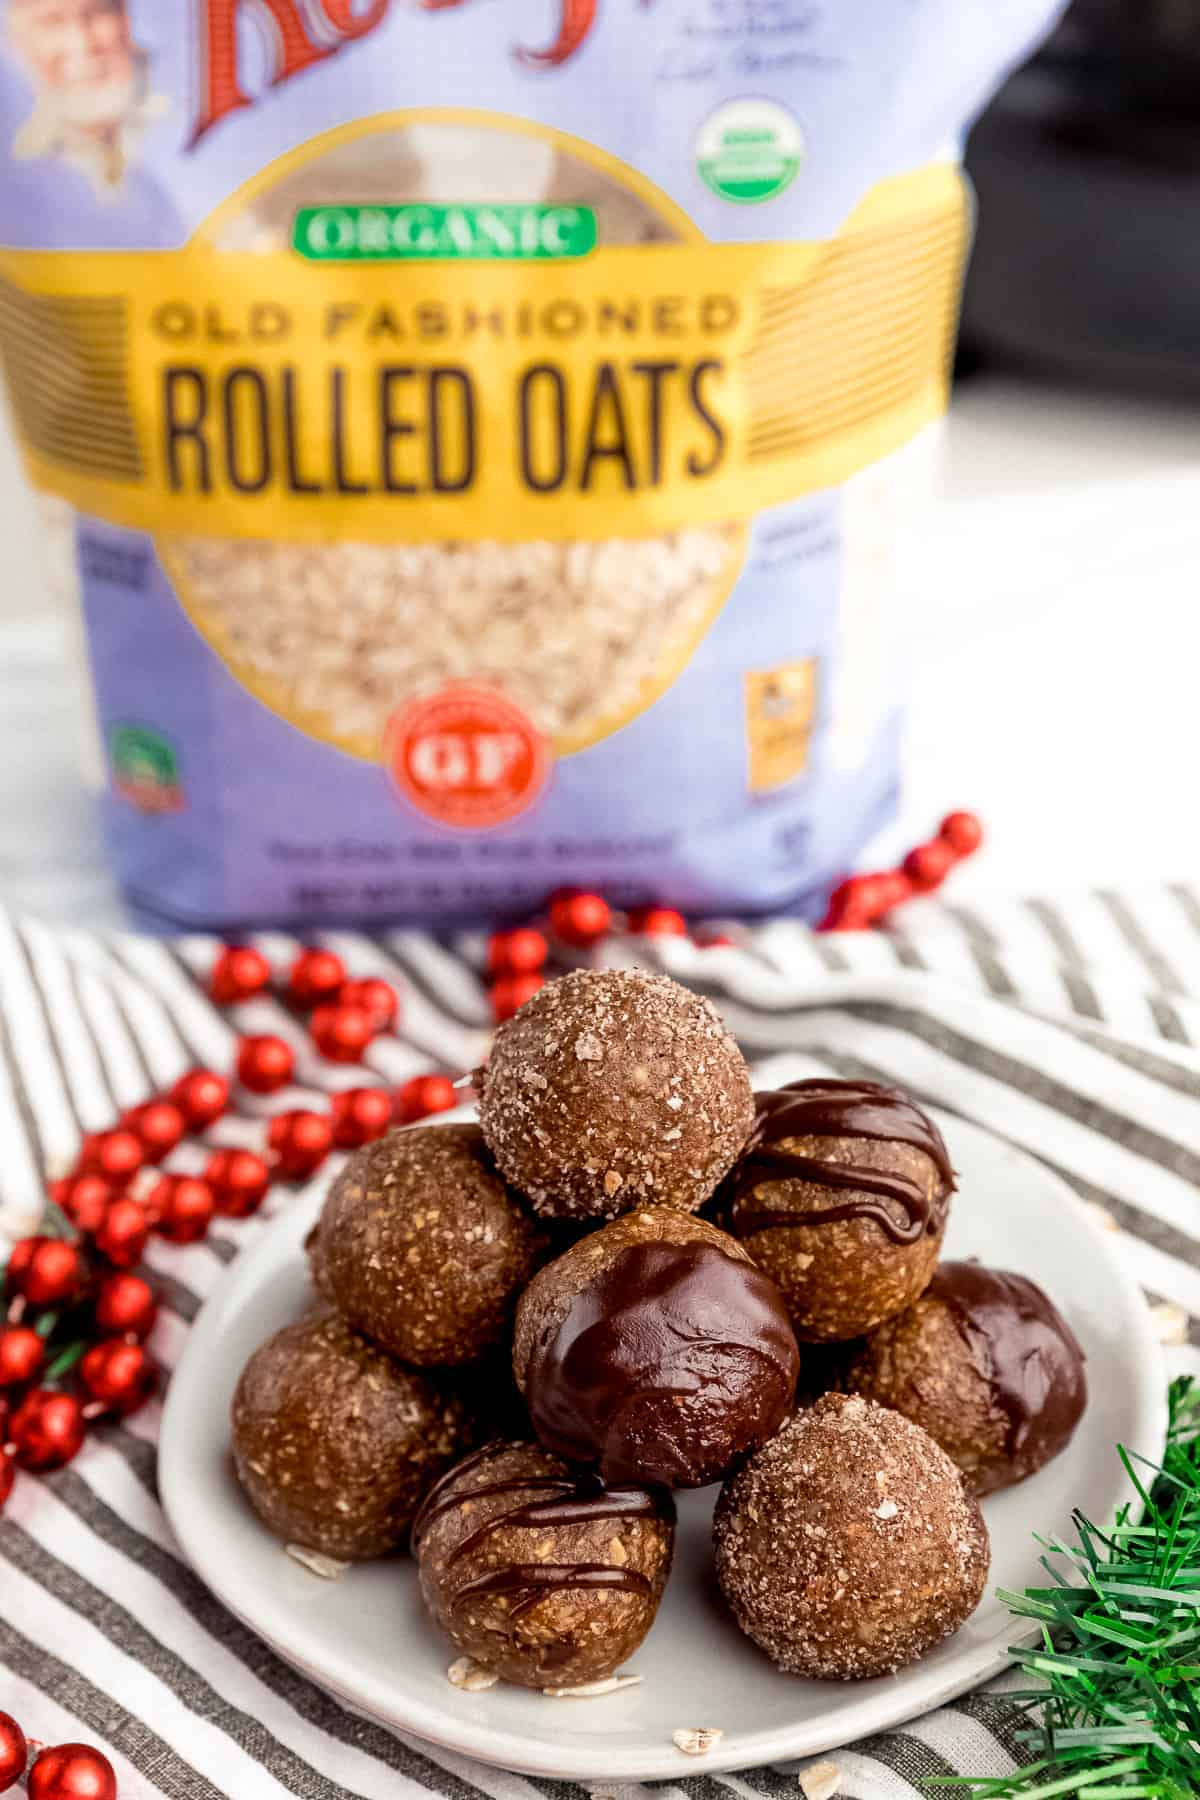 gingerbread energy bites on a plate with a bag of Bob's Red Mill Gluten Free Organic Old Fashioned Oats in the back